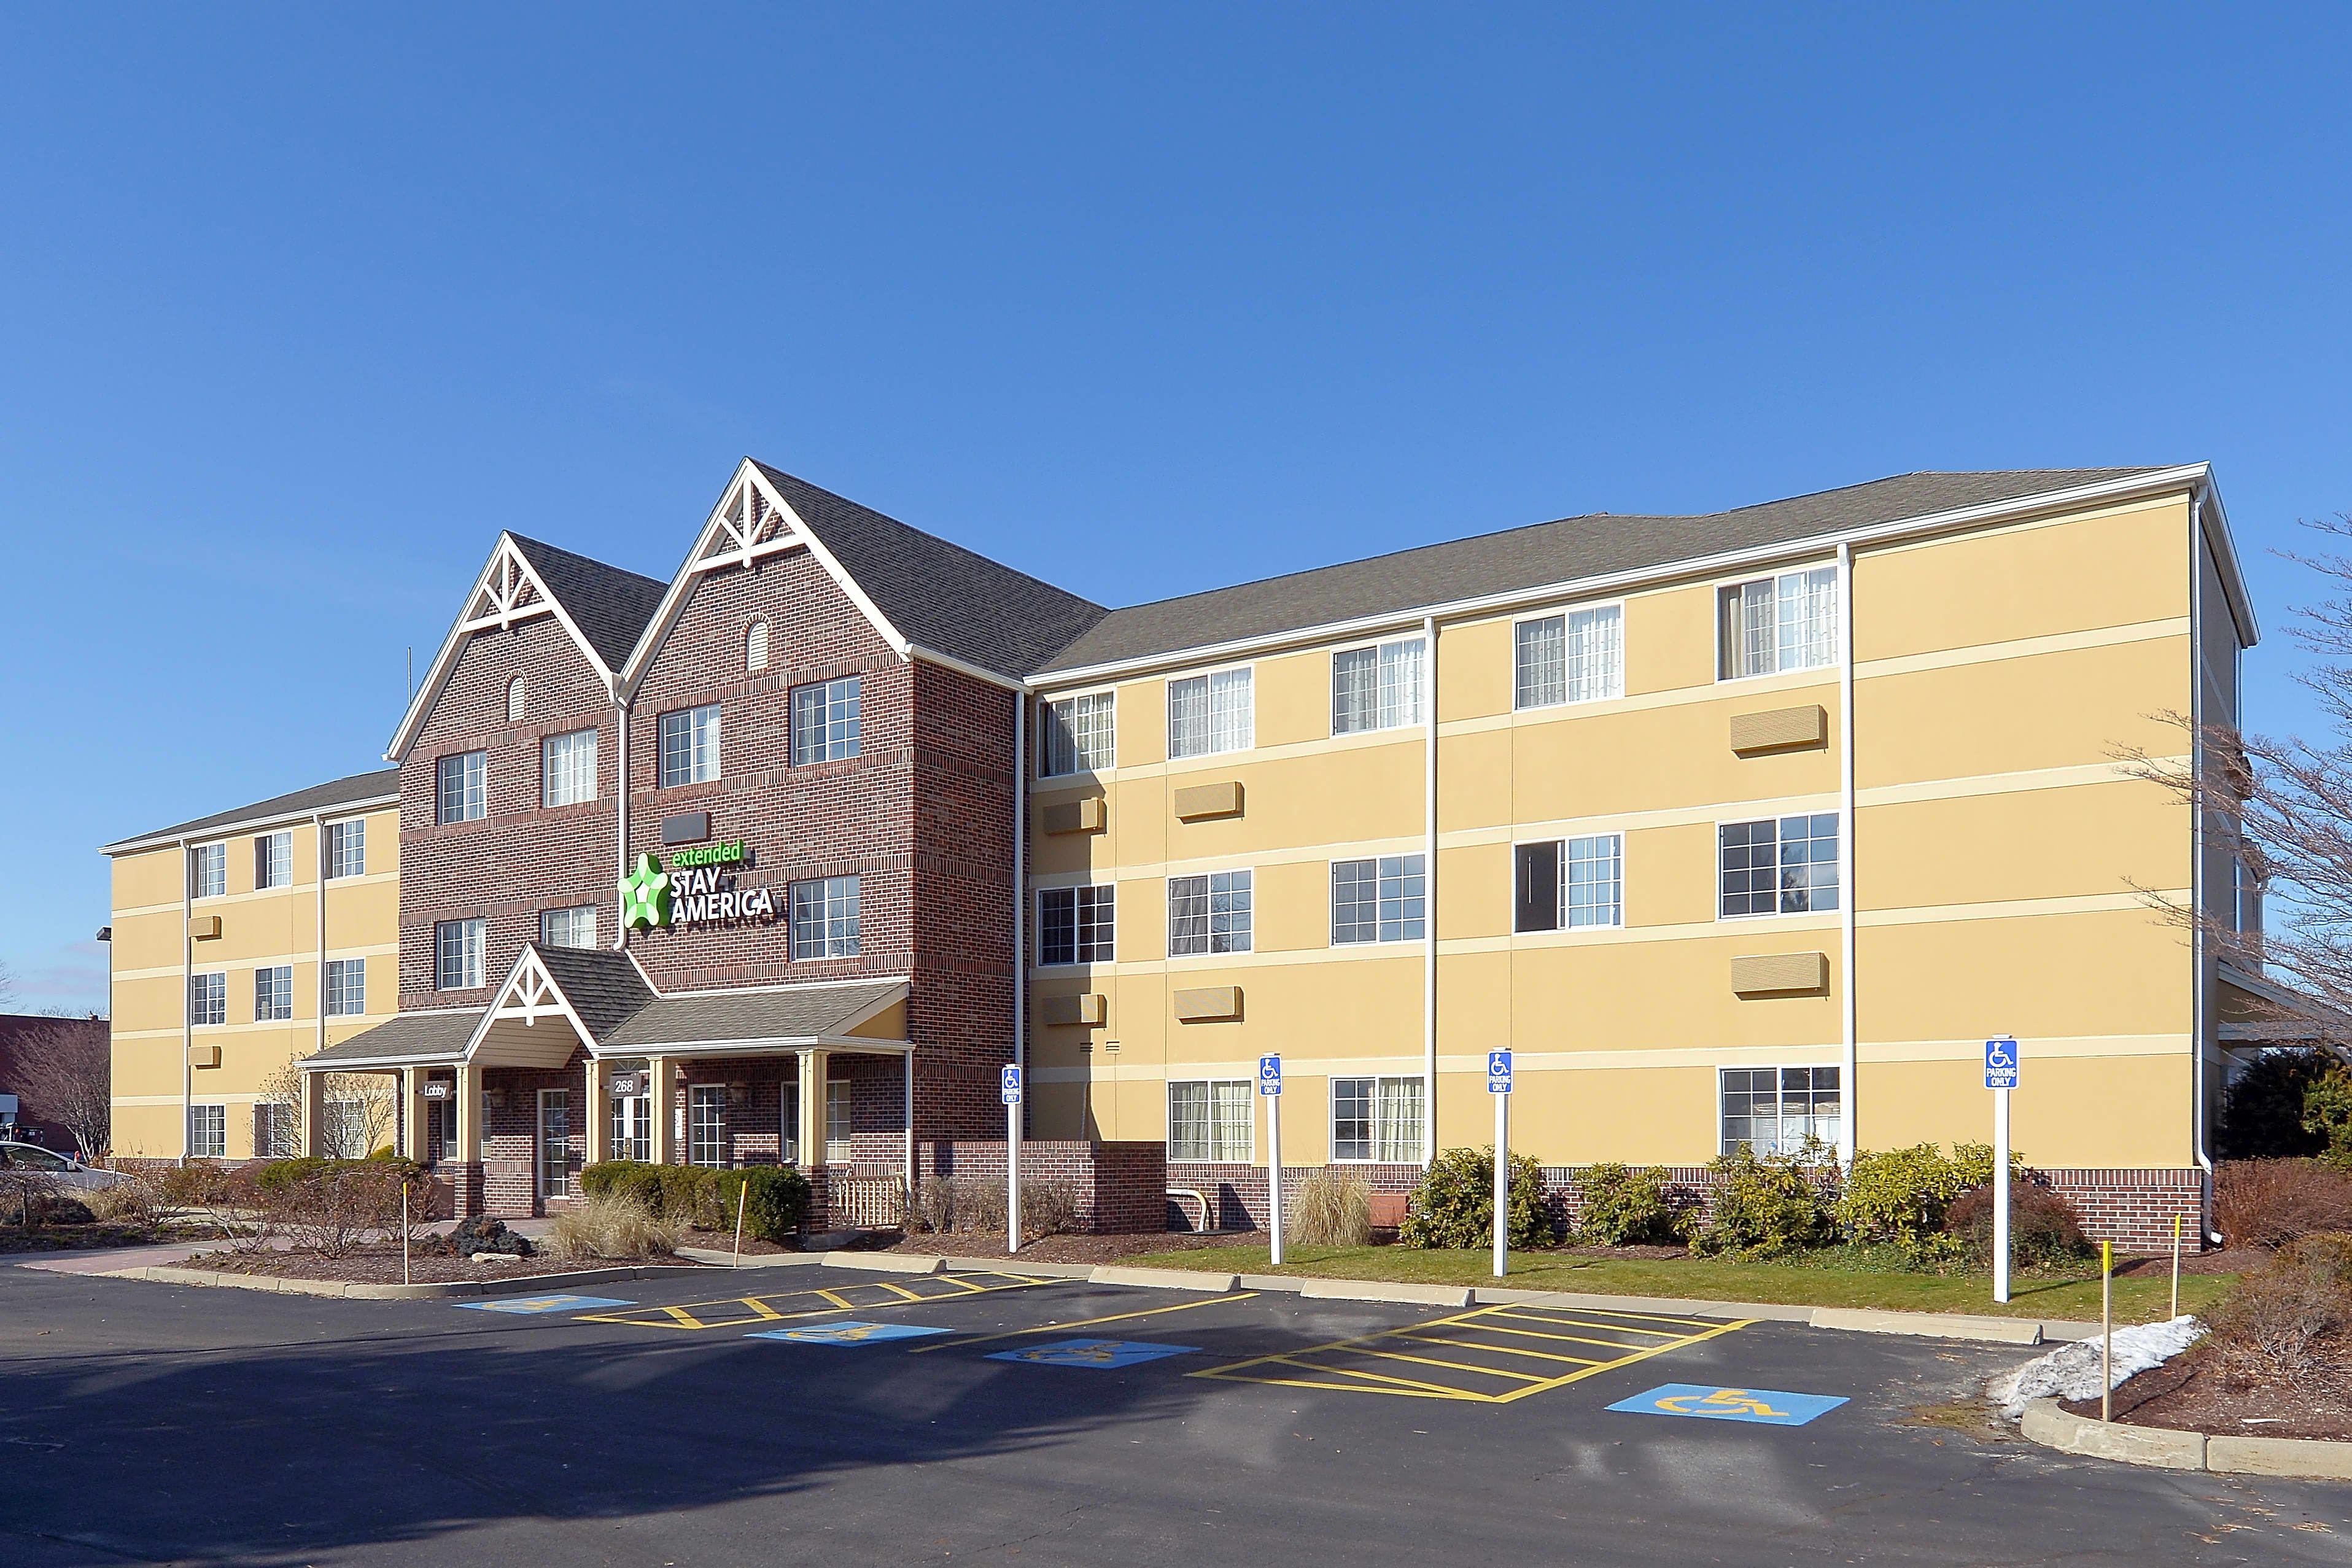 Apartments Near New England Tech Furnished Studio - Providence - Airport for New England Institute of Technology Students in Warwick, RI